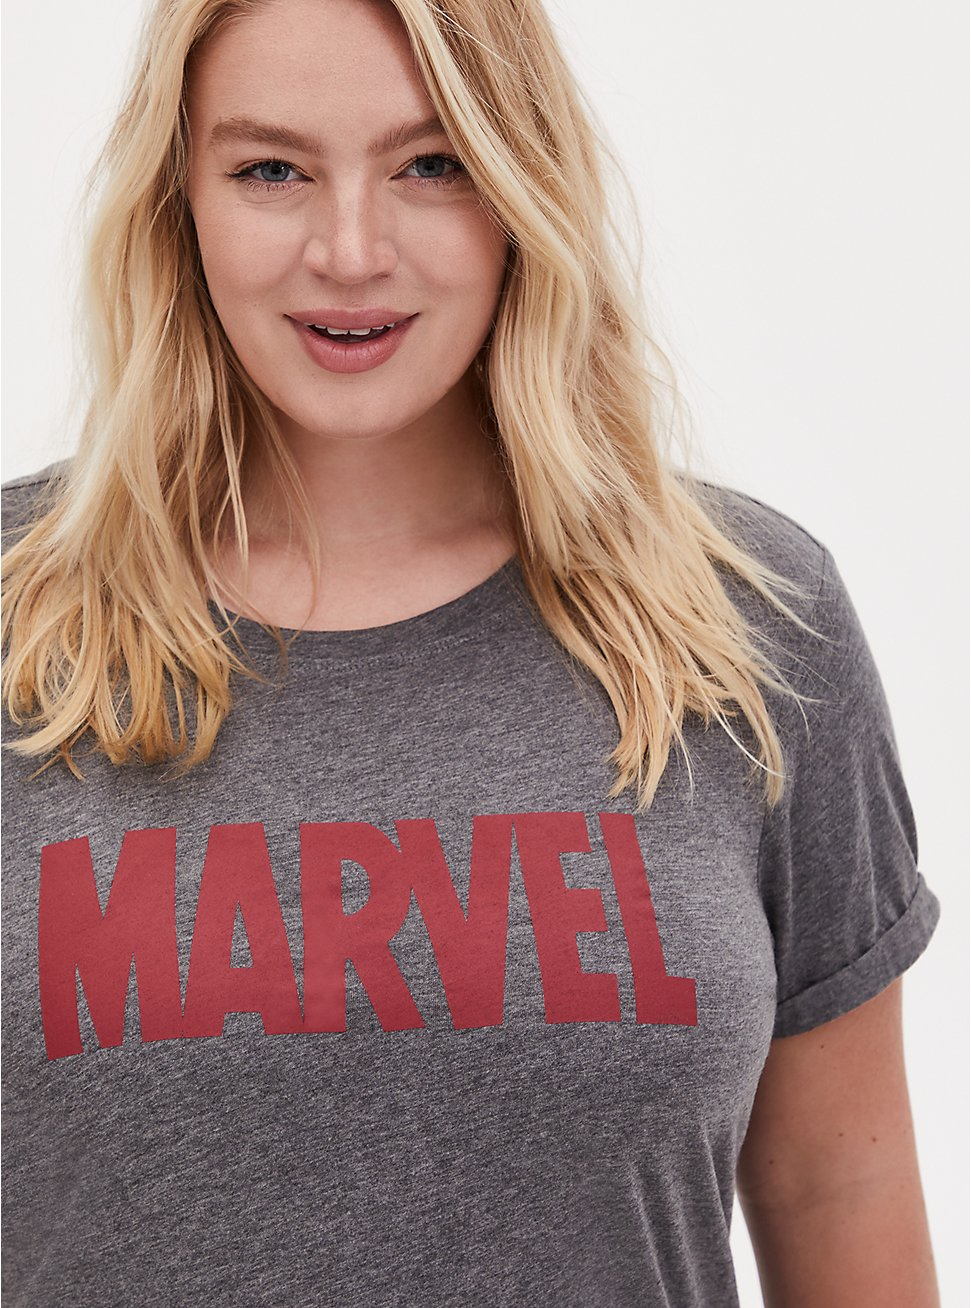 Marvel Logo Relaxed Fit Crew Top - Grey, GREY, hi-res